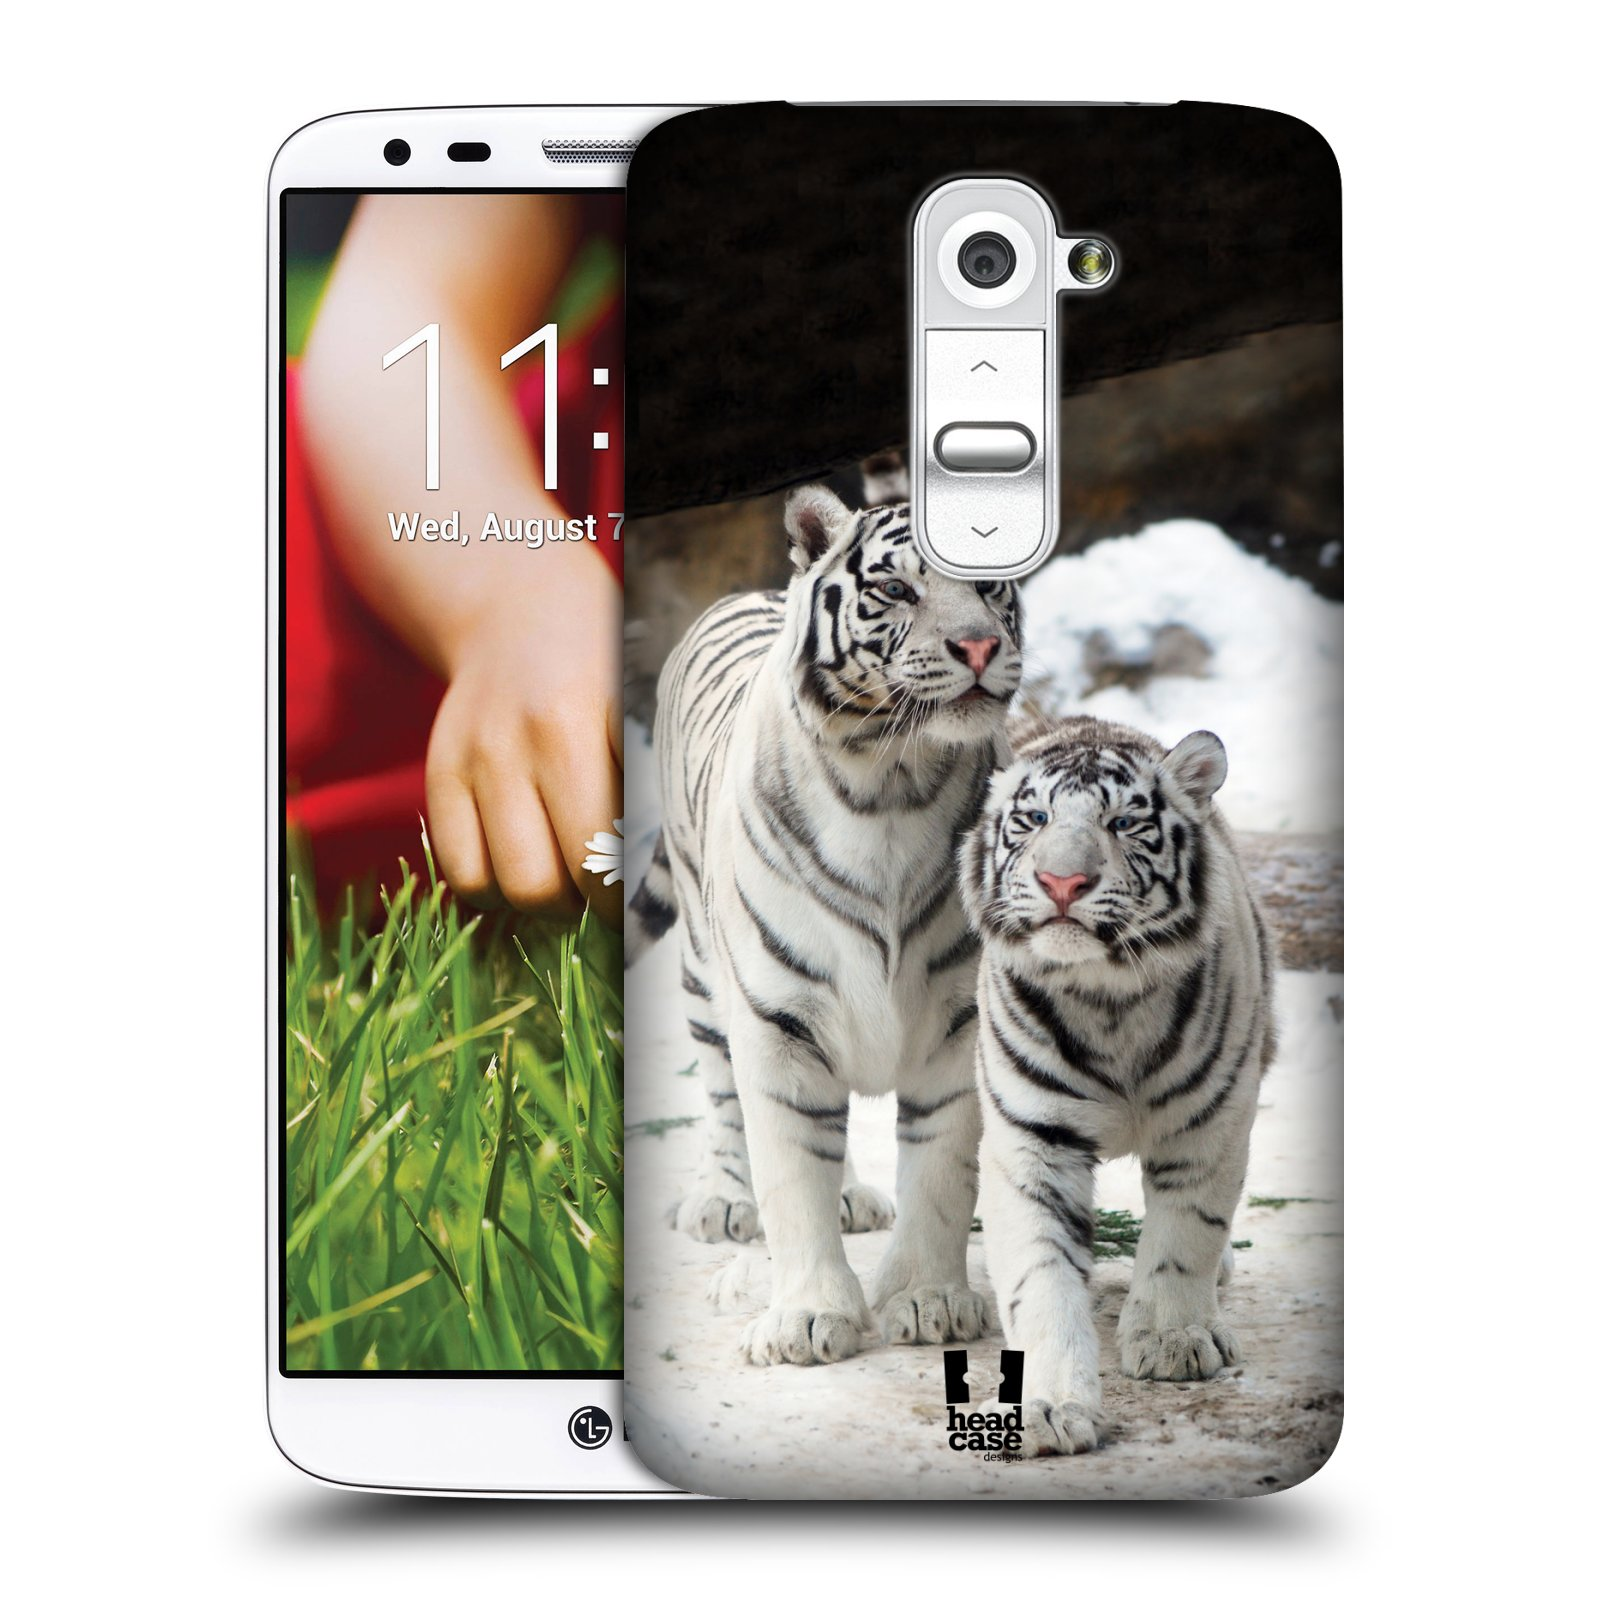 HEAD CASE DESIGNS FAMOUS ANIMALS HARD BACK CASE COVER FOR LG G2 D802